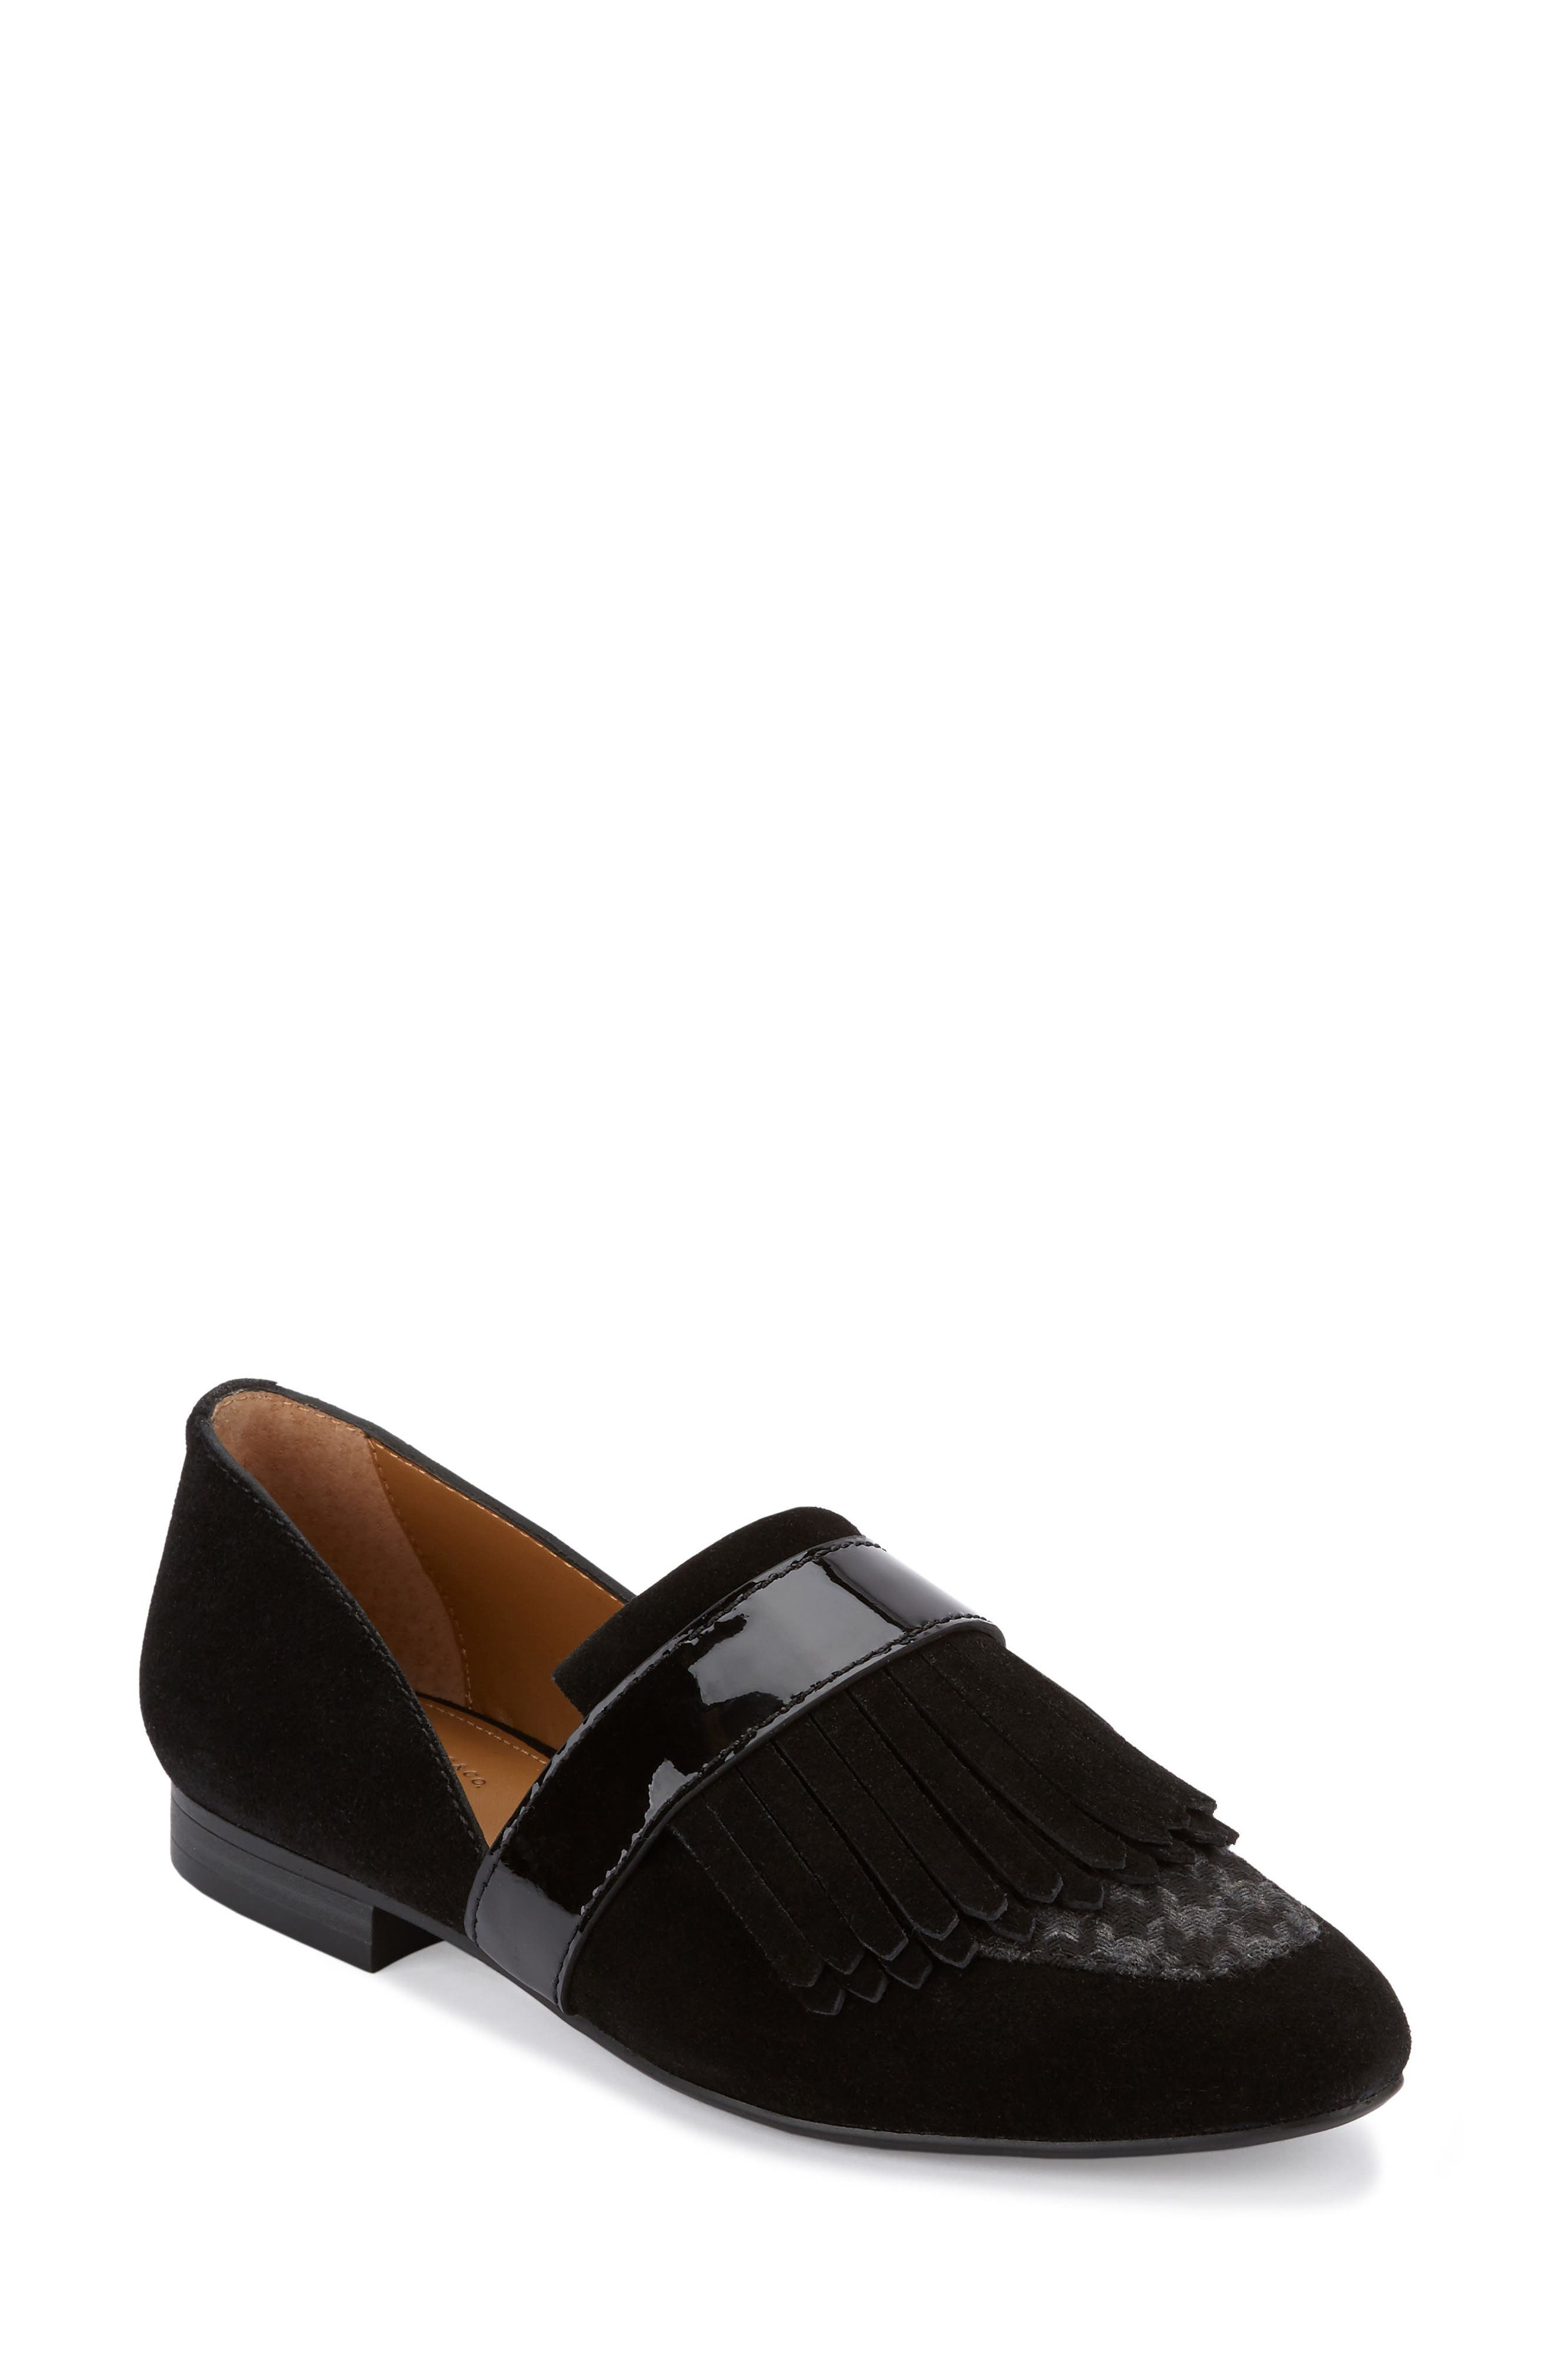 'Harlow' Kiltie Leather Loafer,                             Main thumbnail 1, color,                             002